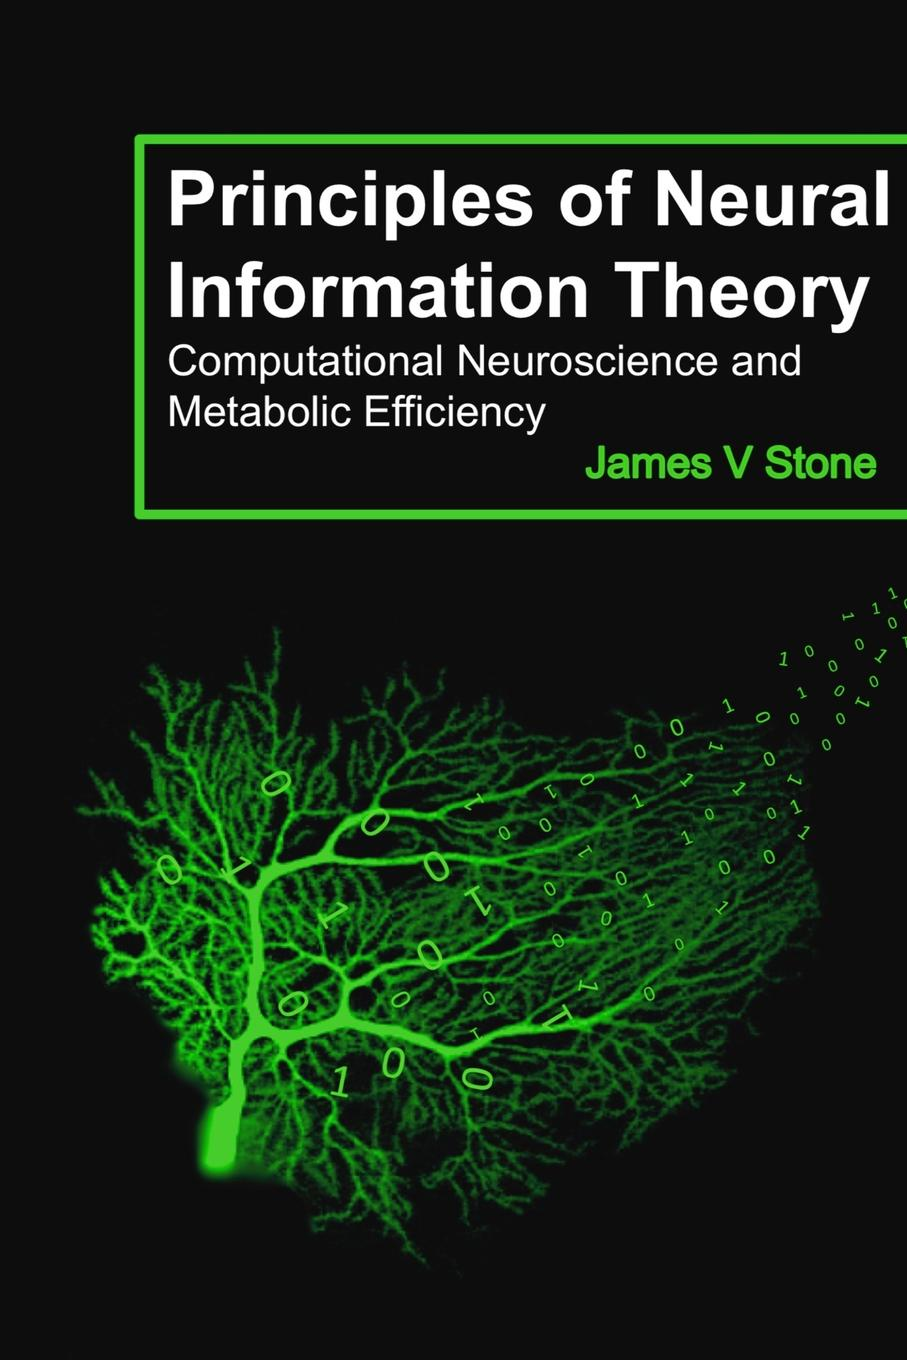 цена на James V Stone Principles of Neural Information Theory. Computational Neuroscience and Metabolic Efficiency